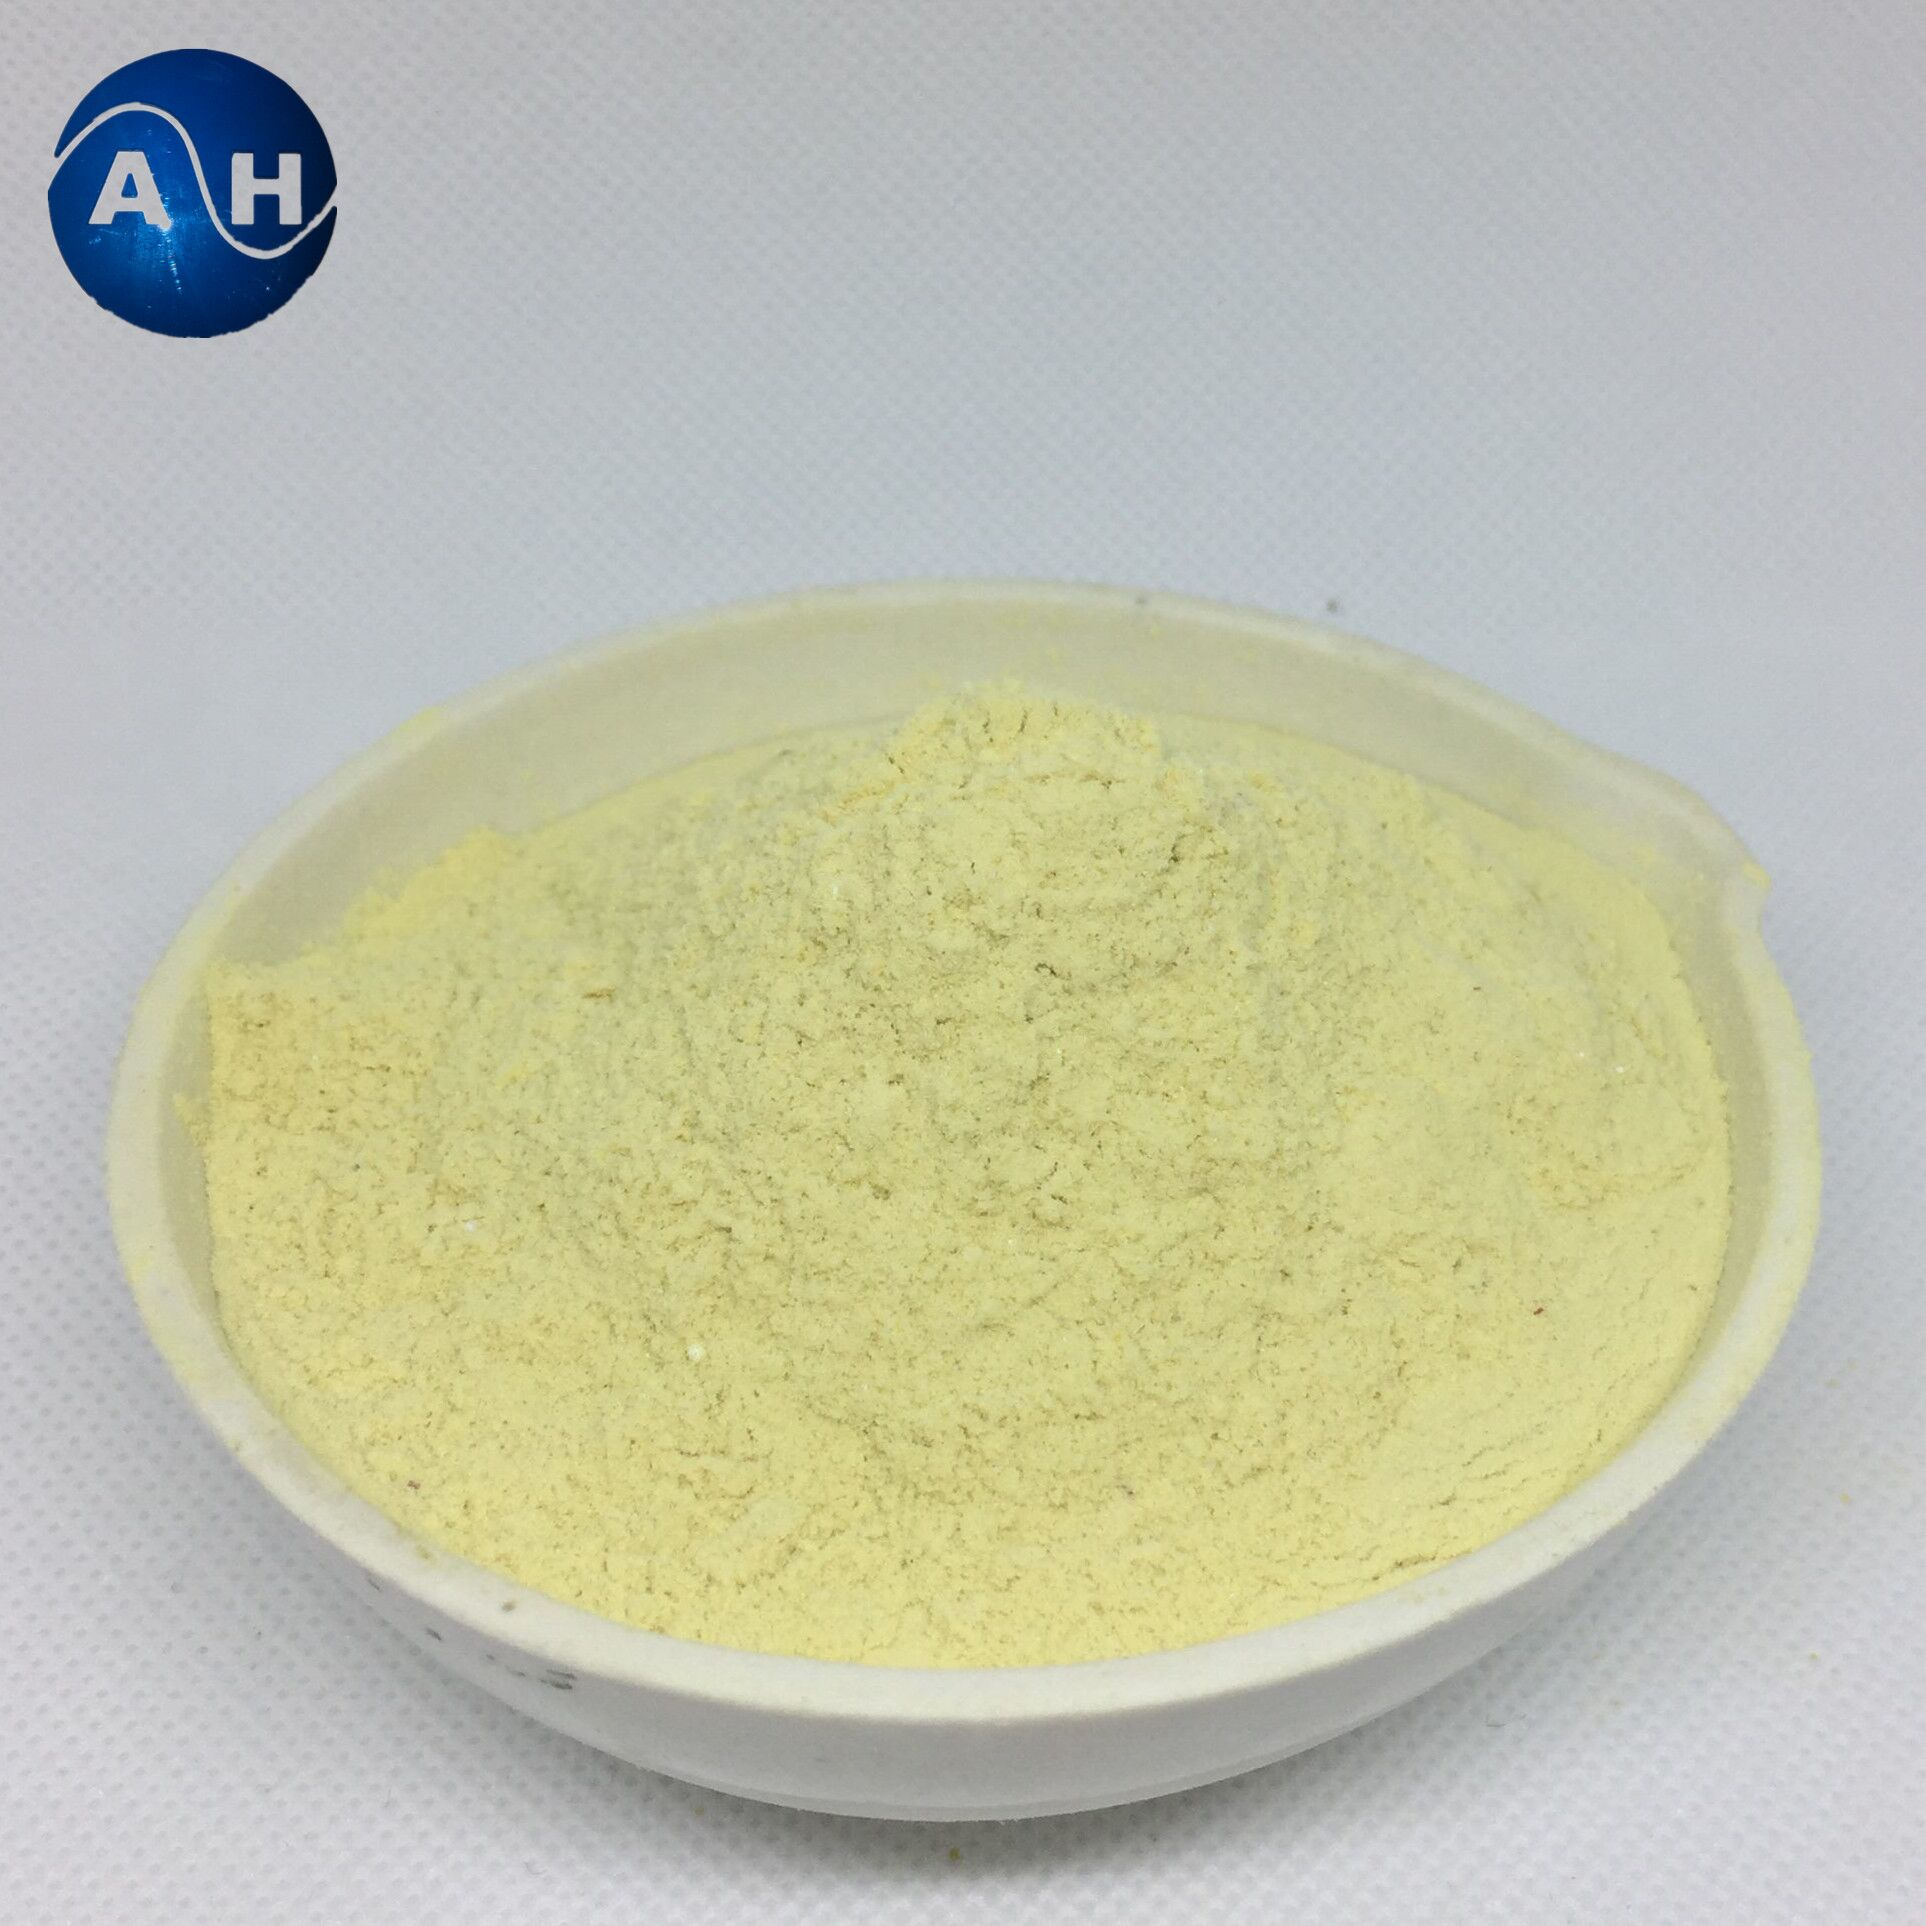 Banana USED 100% water soluble Chelate Fertilizer Boron Zinc Magnesium Top Fertilizer